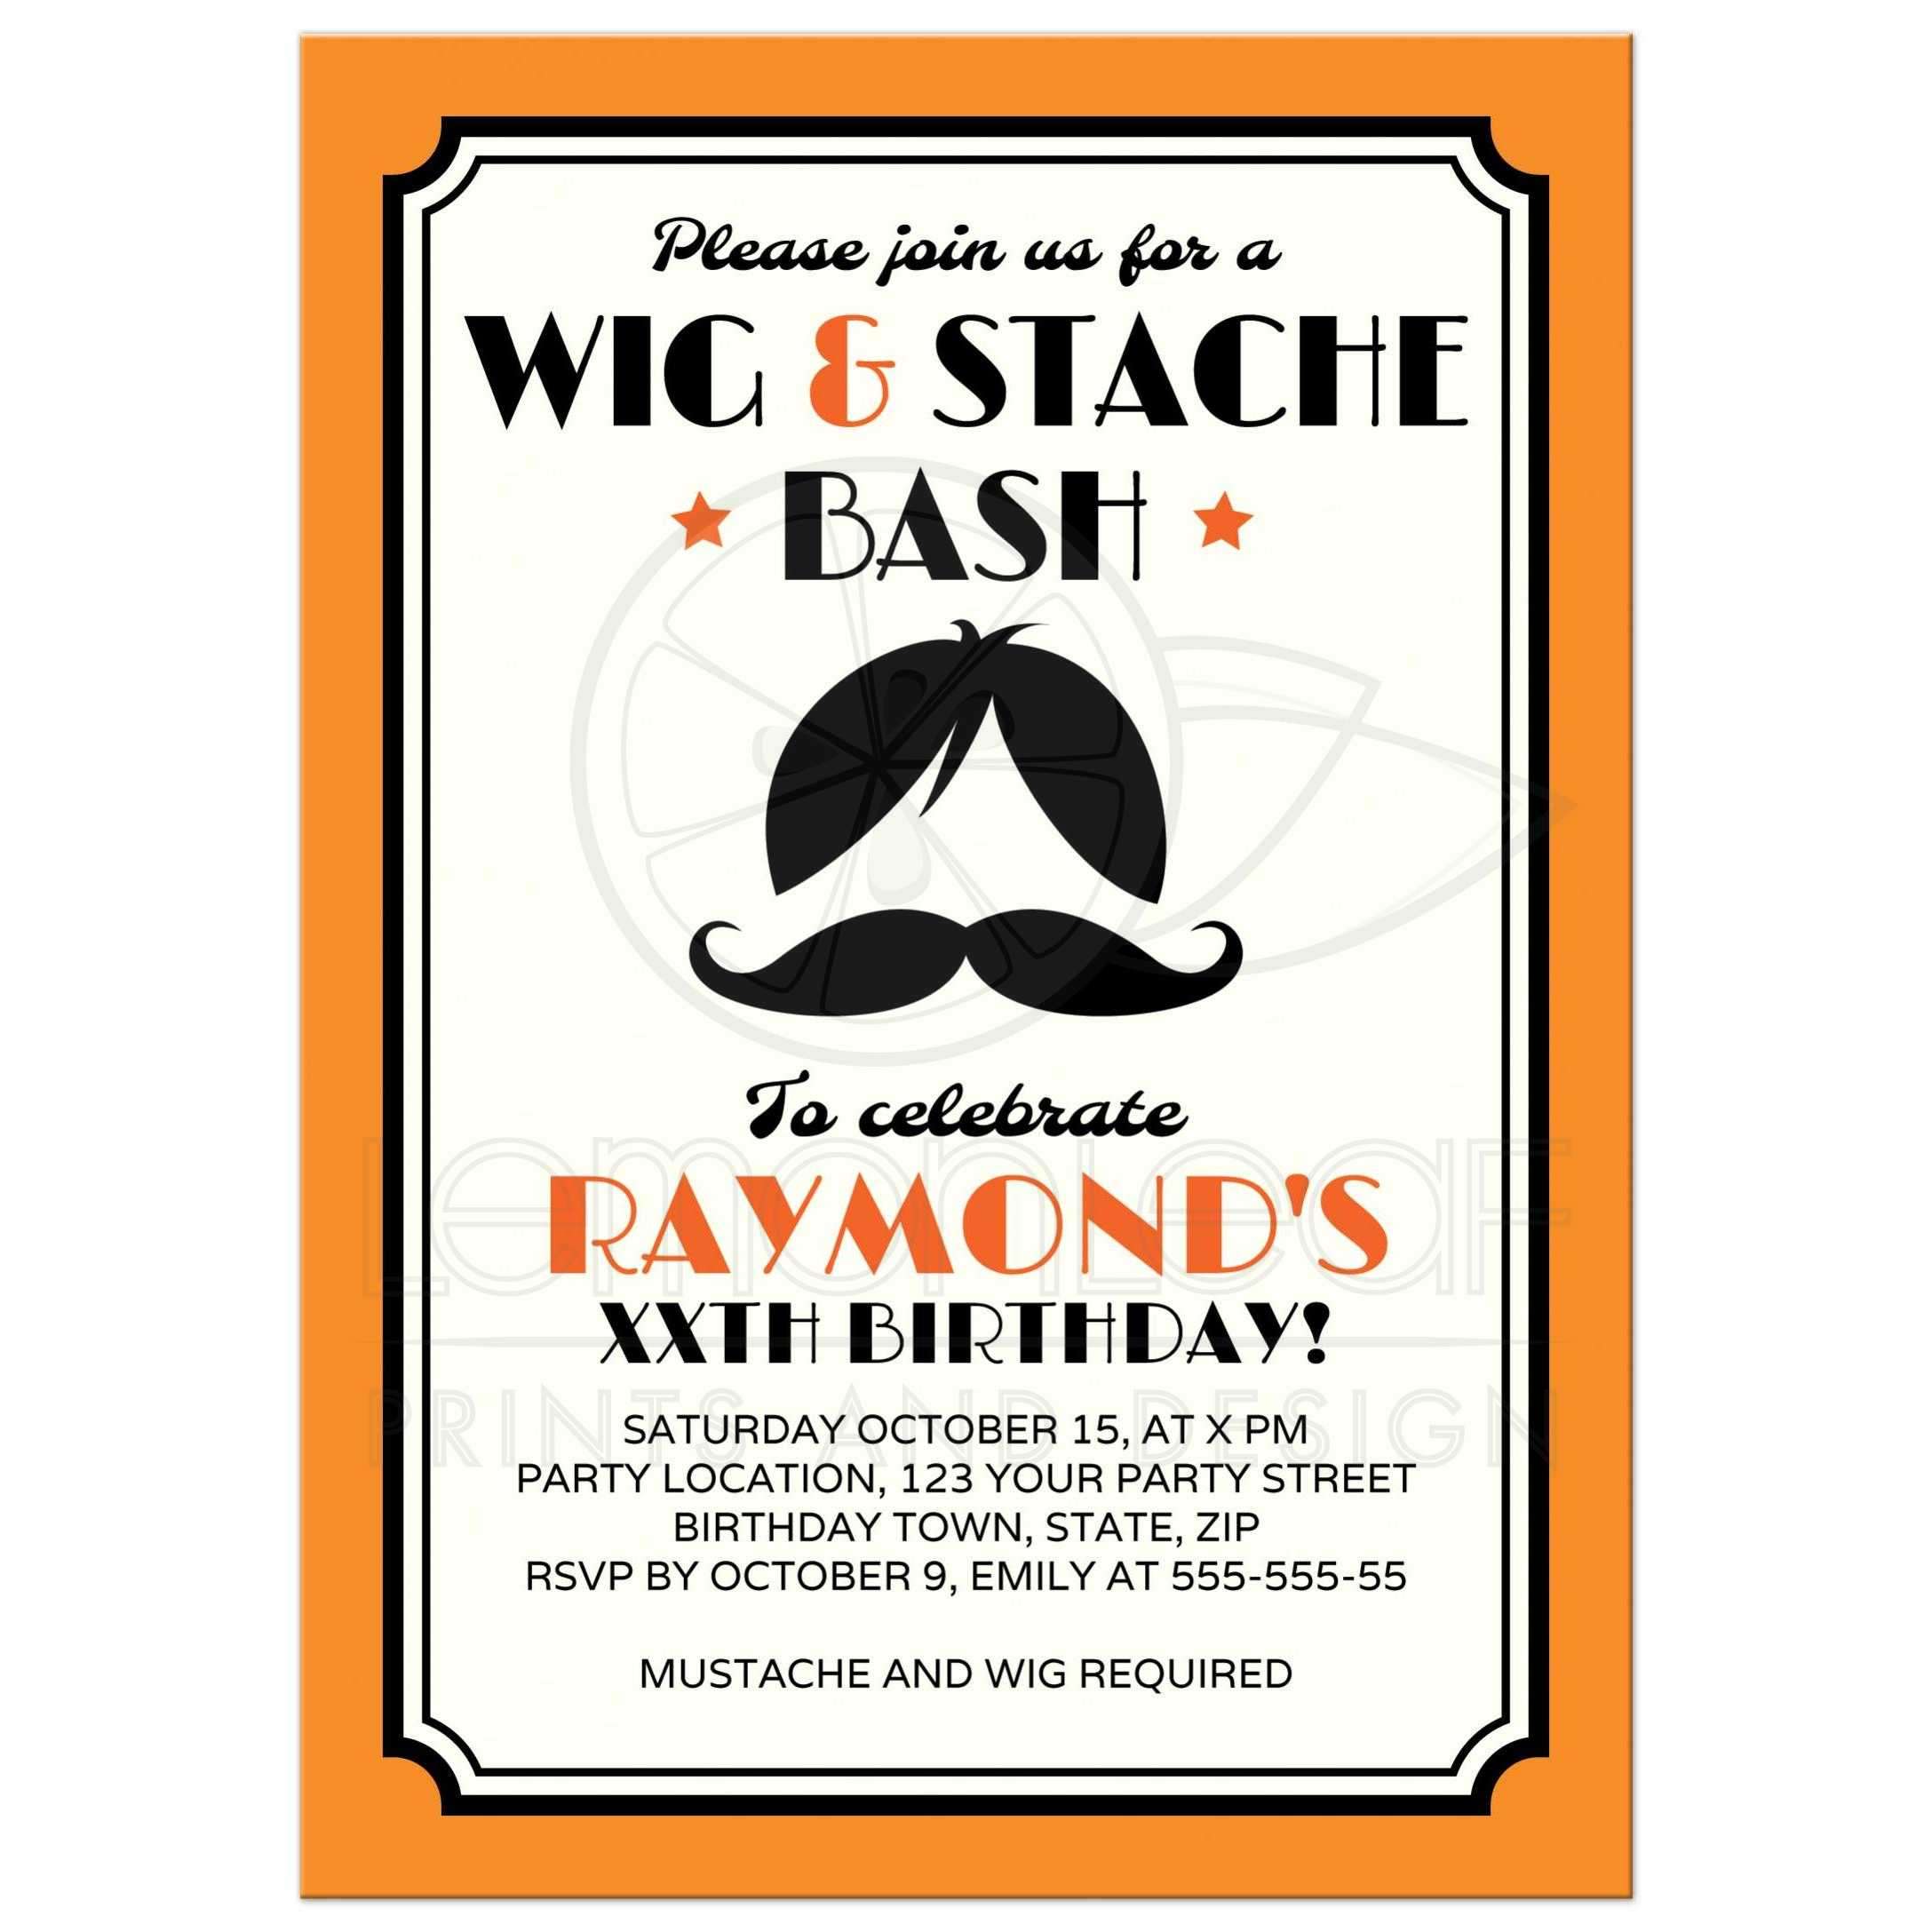 Retro wig and mustache bash birthday party invitation - orange, black